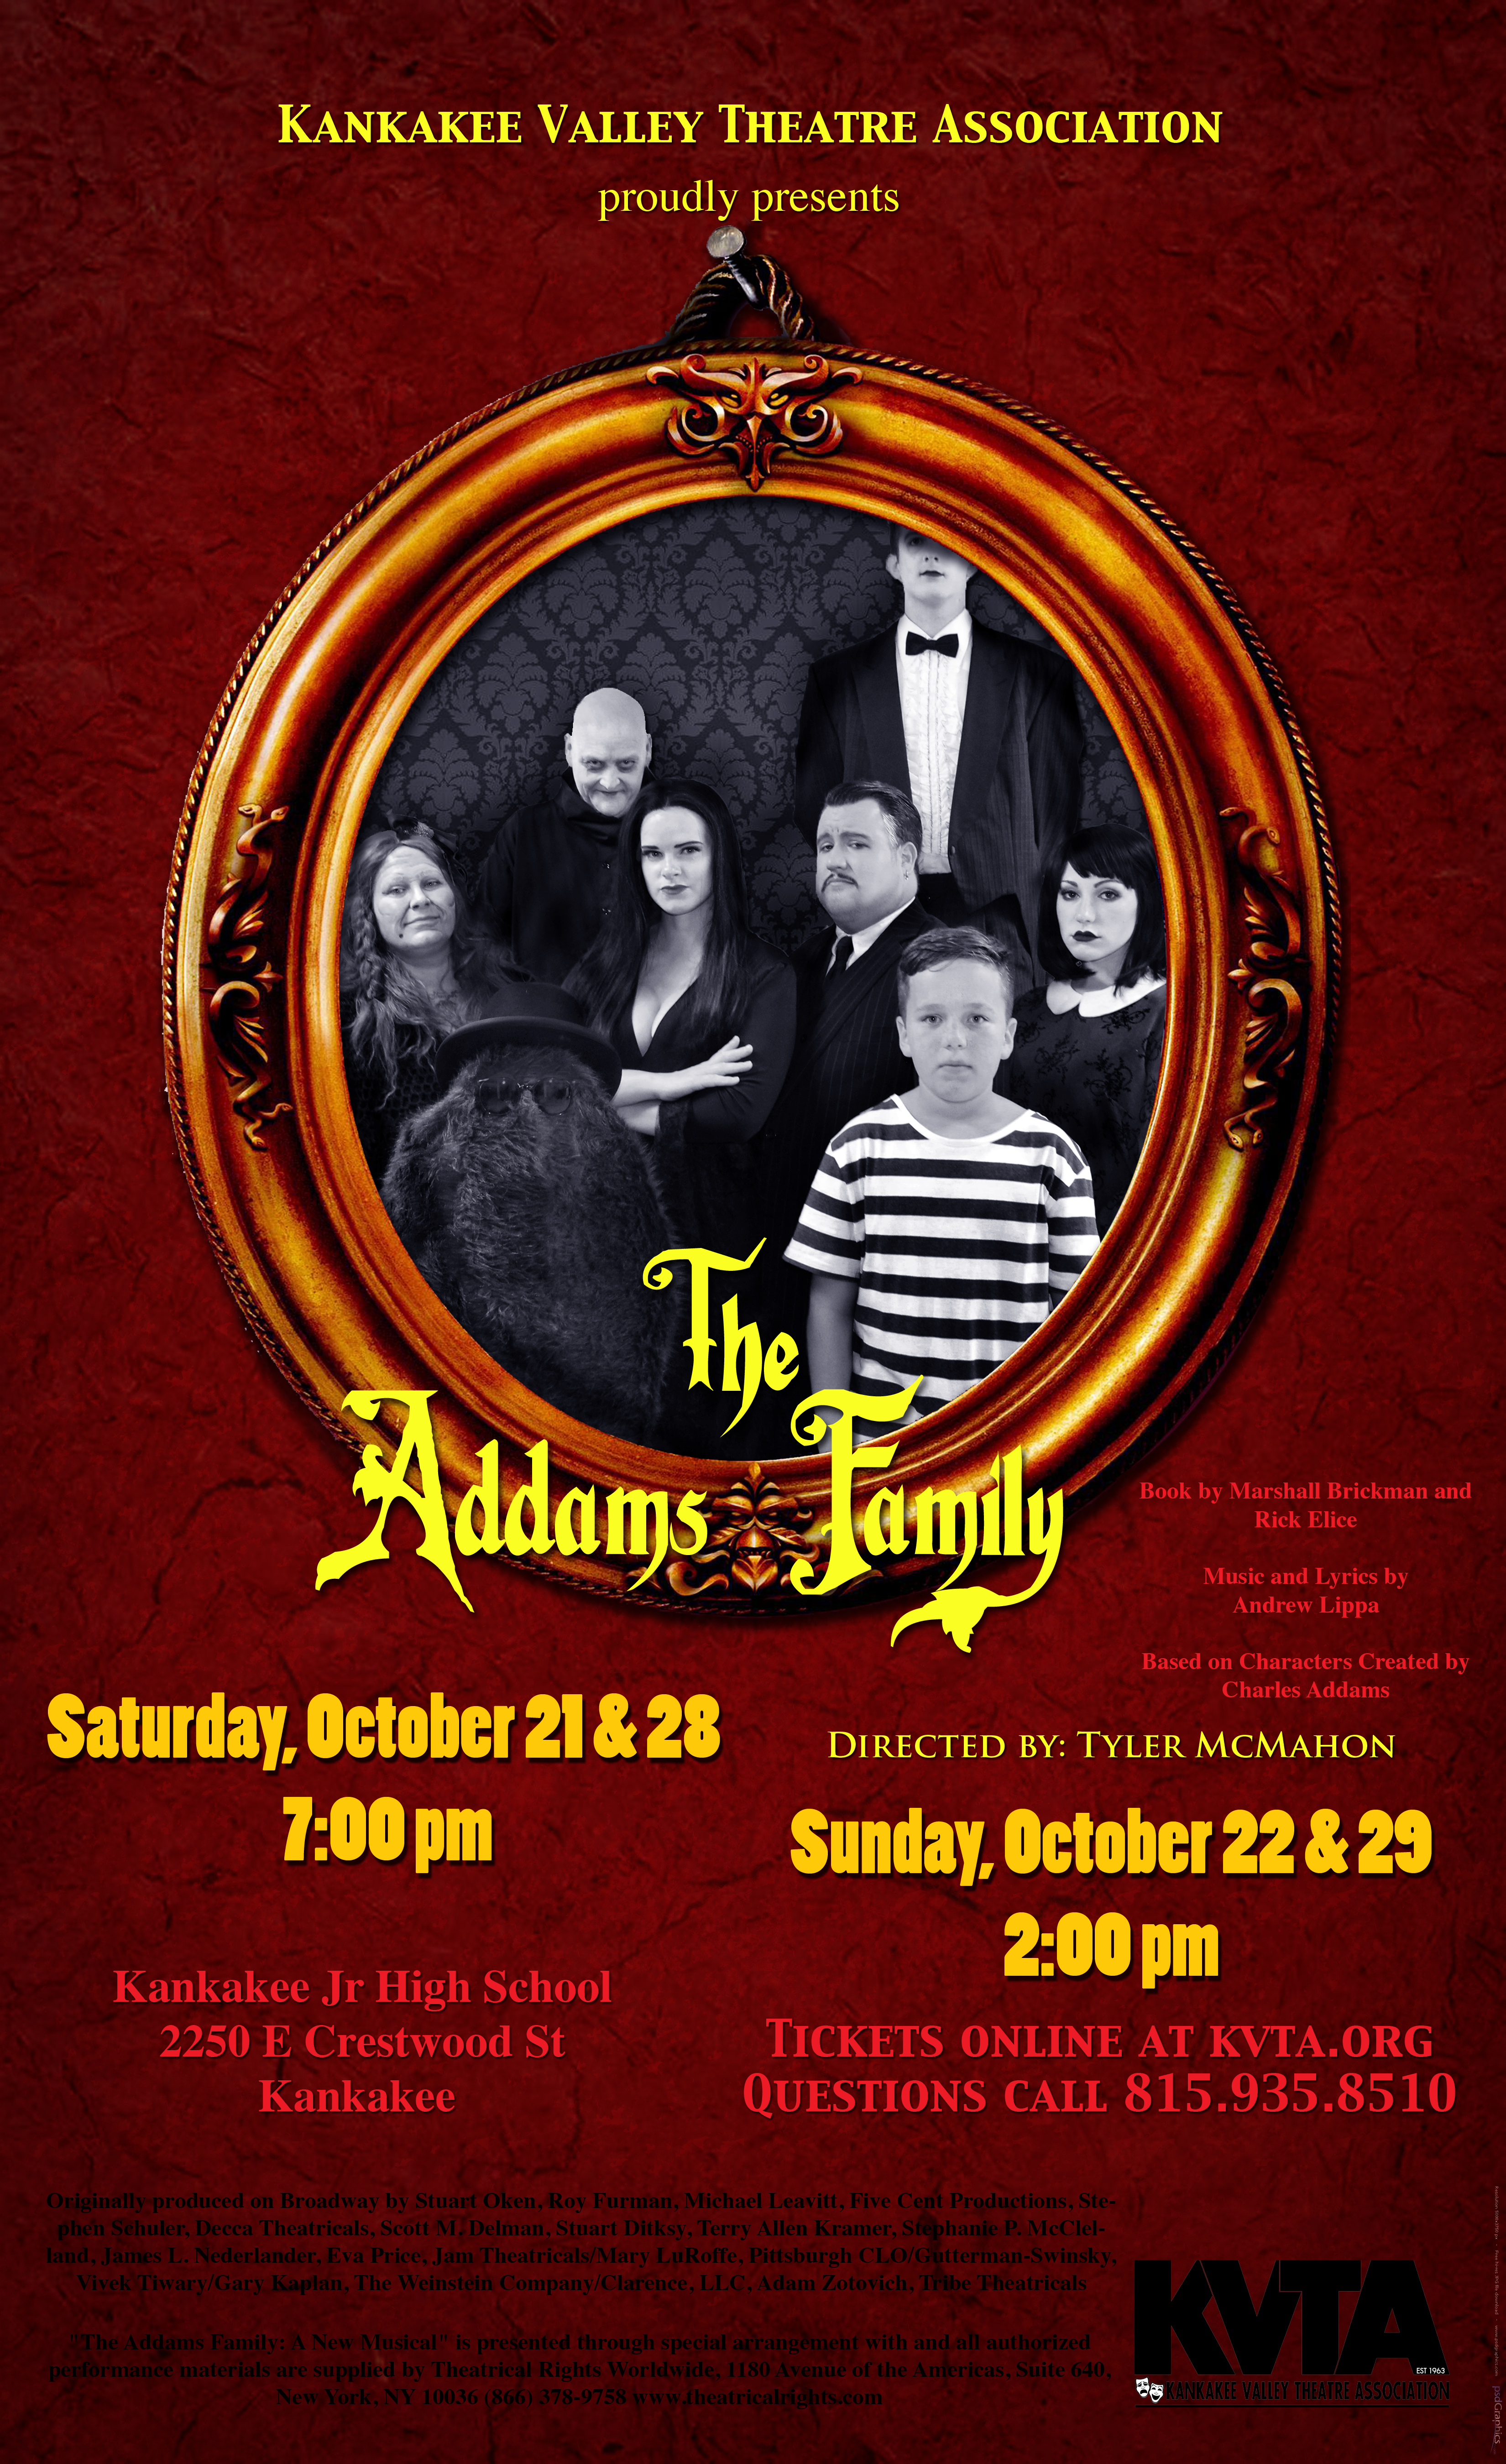 KVTA's The Addams Family